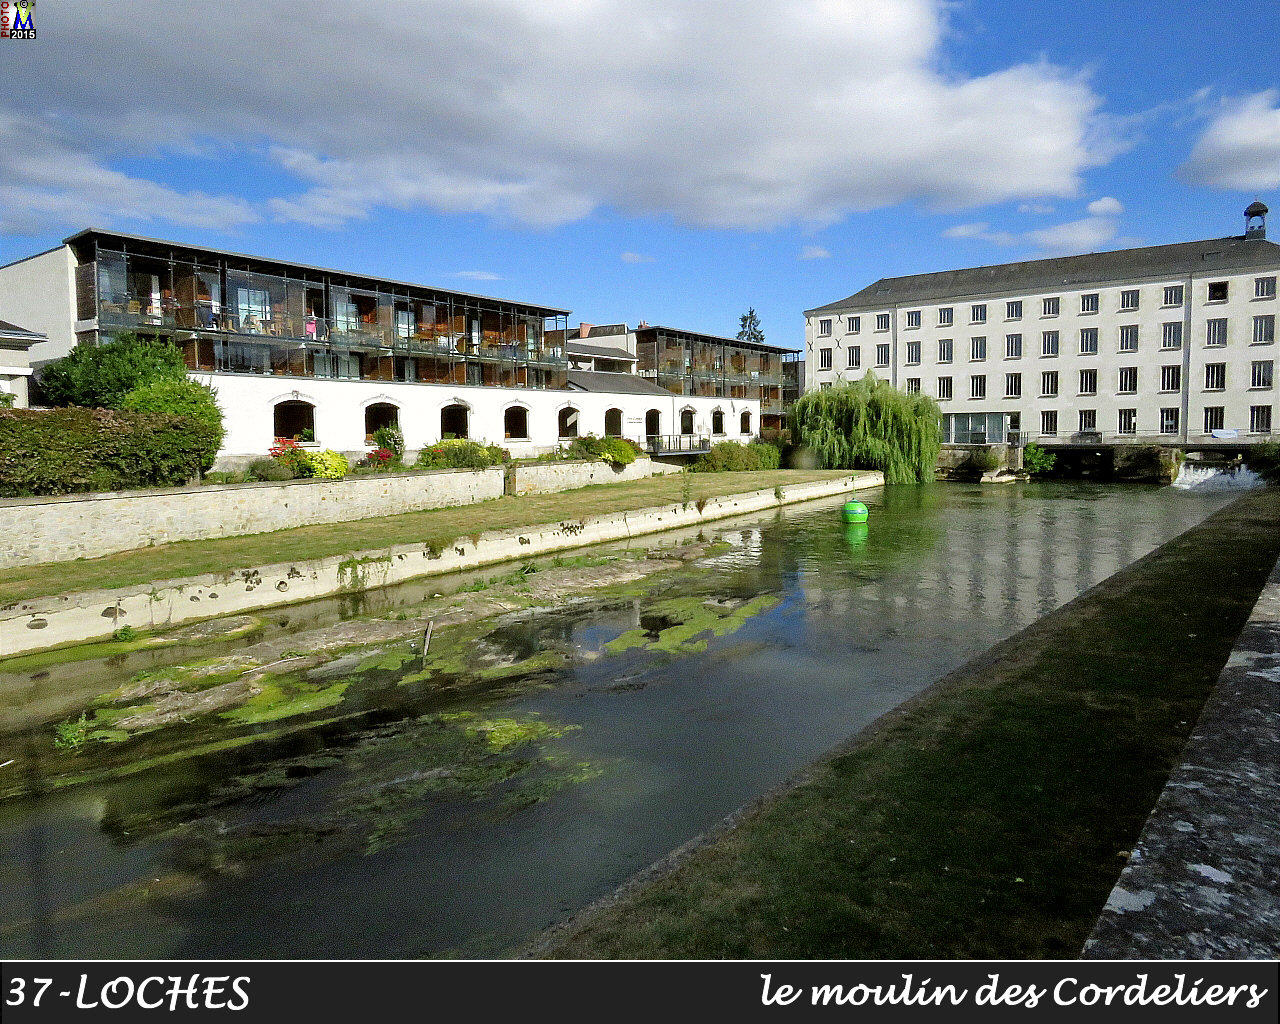 37LOCHES-moulin_102.jpg